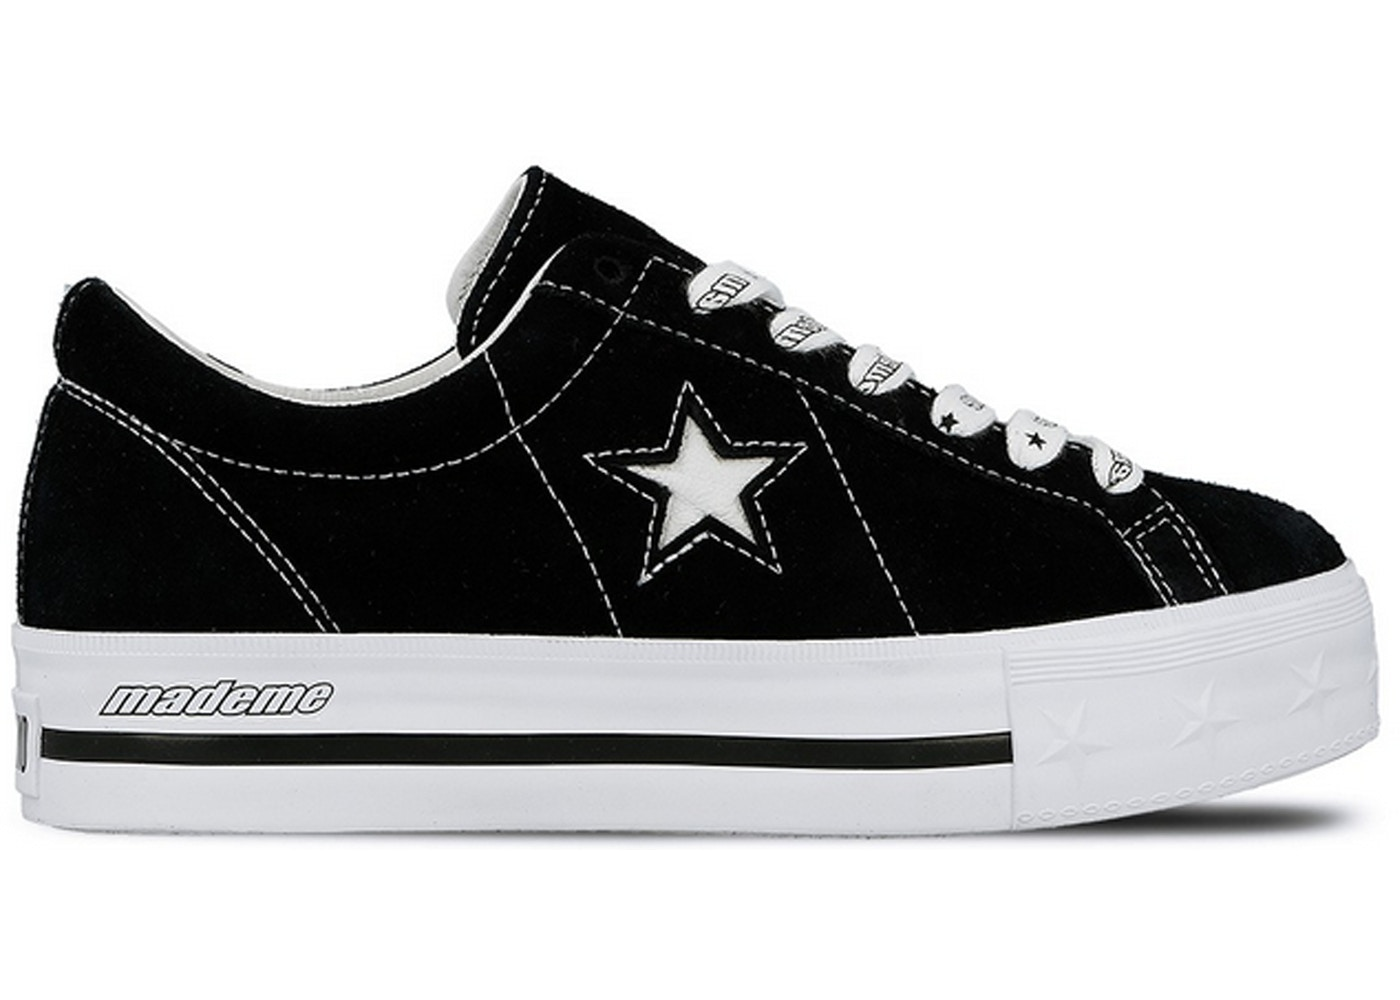 on sale run shoes moderate cost Converse One Star Platform Ox MadeMe Black (W)